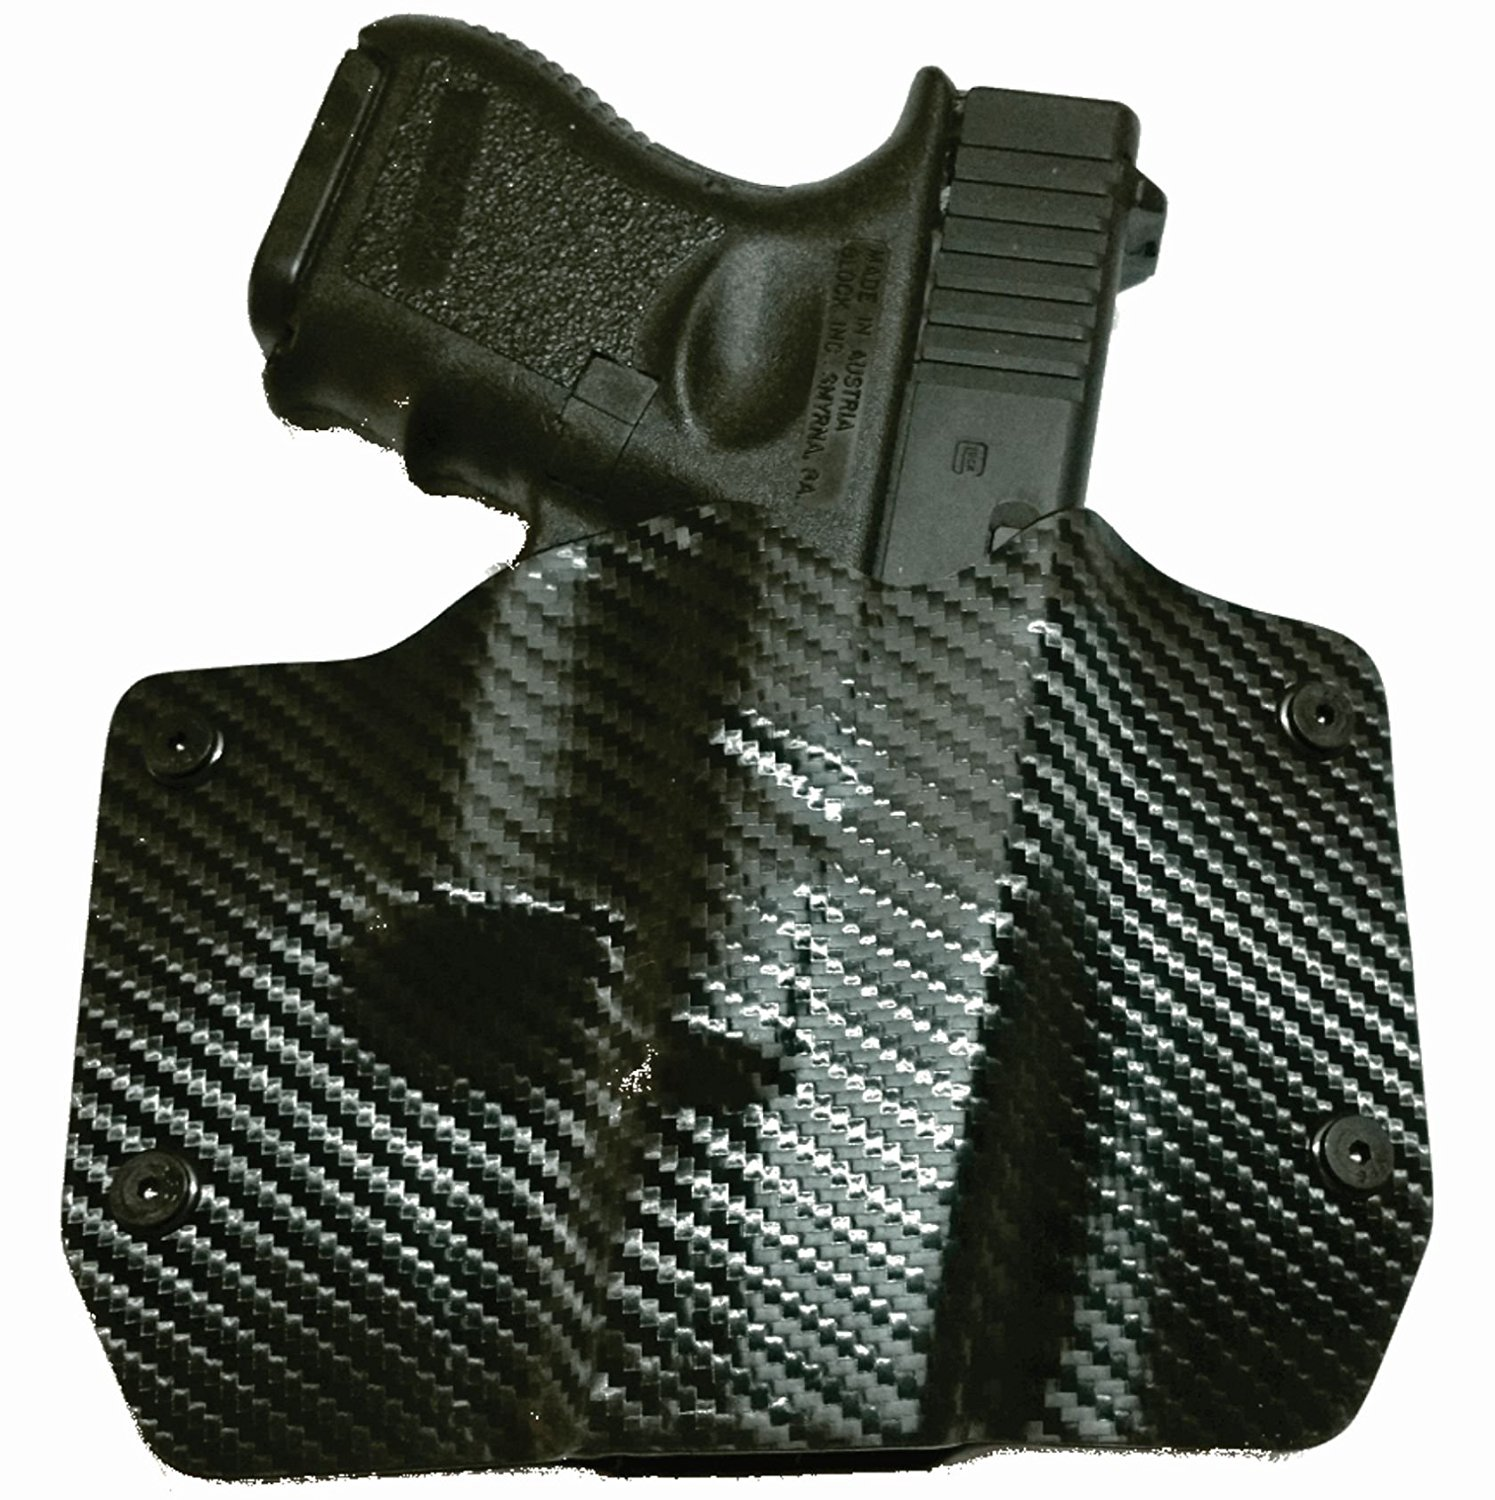 image of Black Carbon Fiber Kydex OWB holster with gun inside